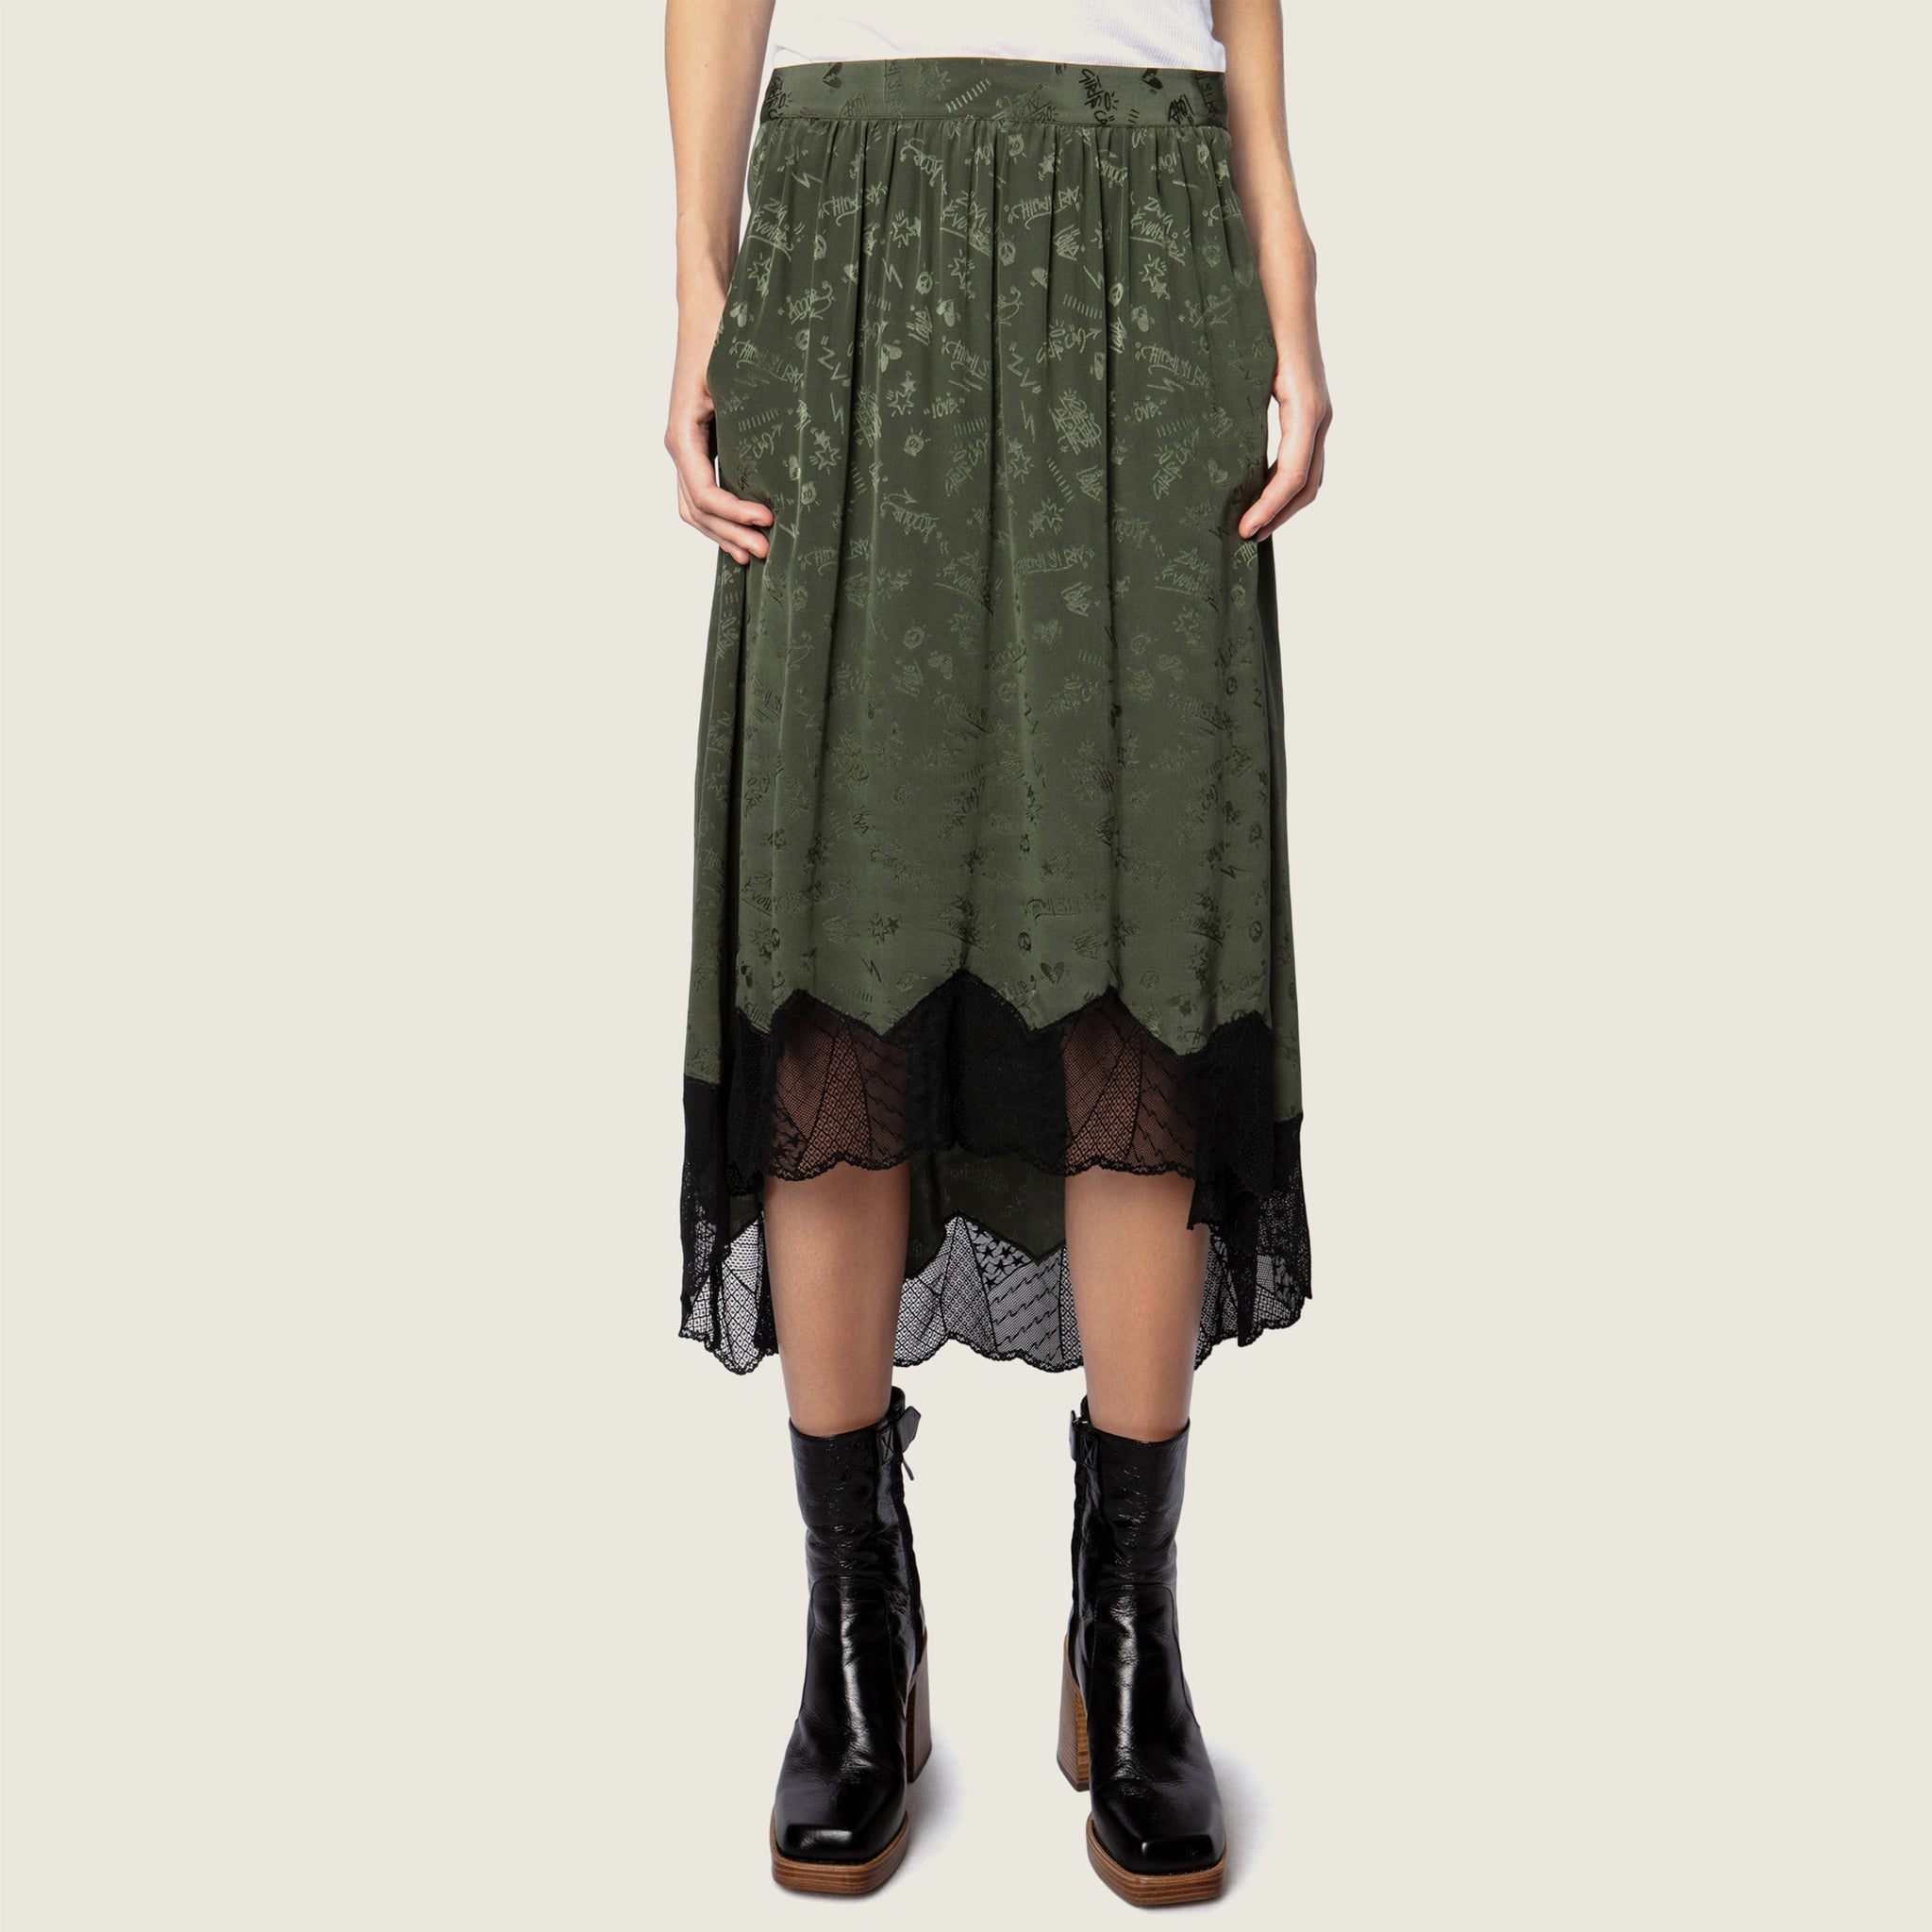 Joslin Kaki Skirt - Blackbird General Store